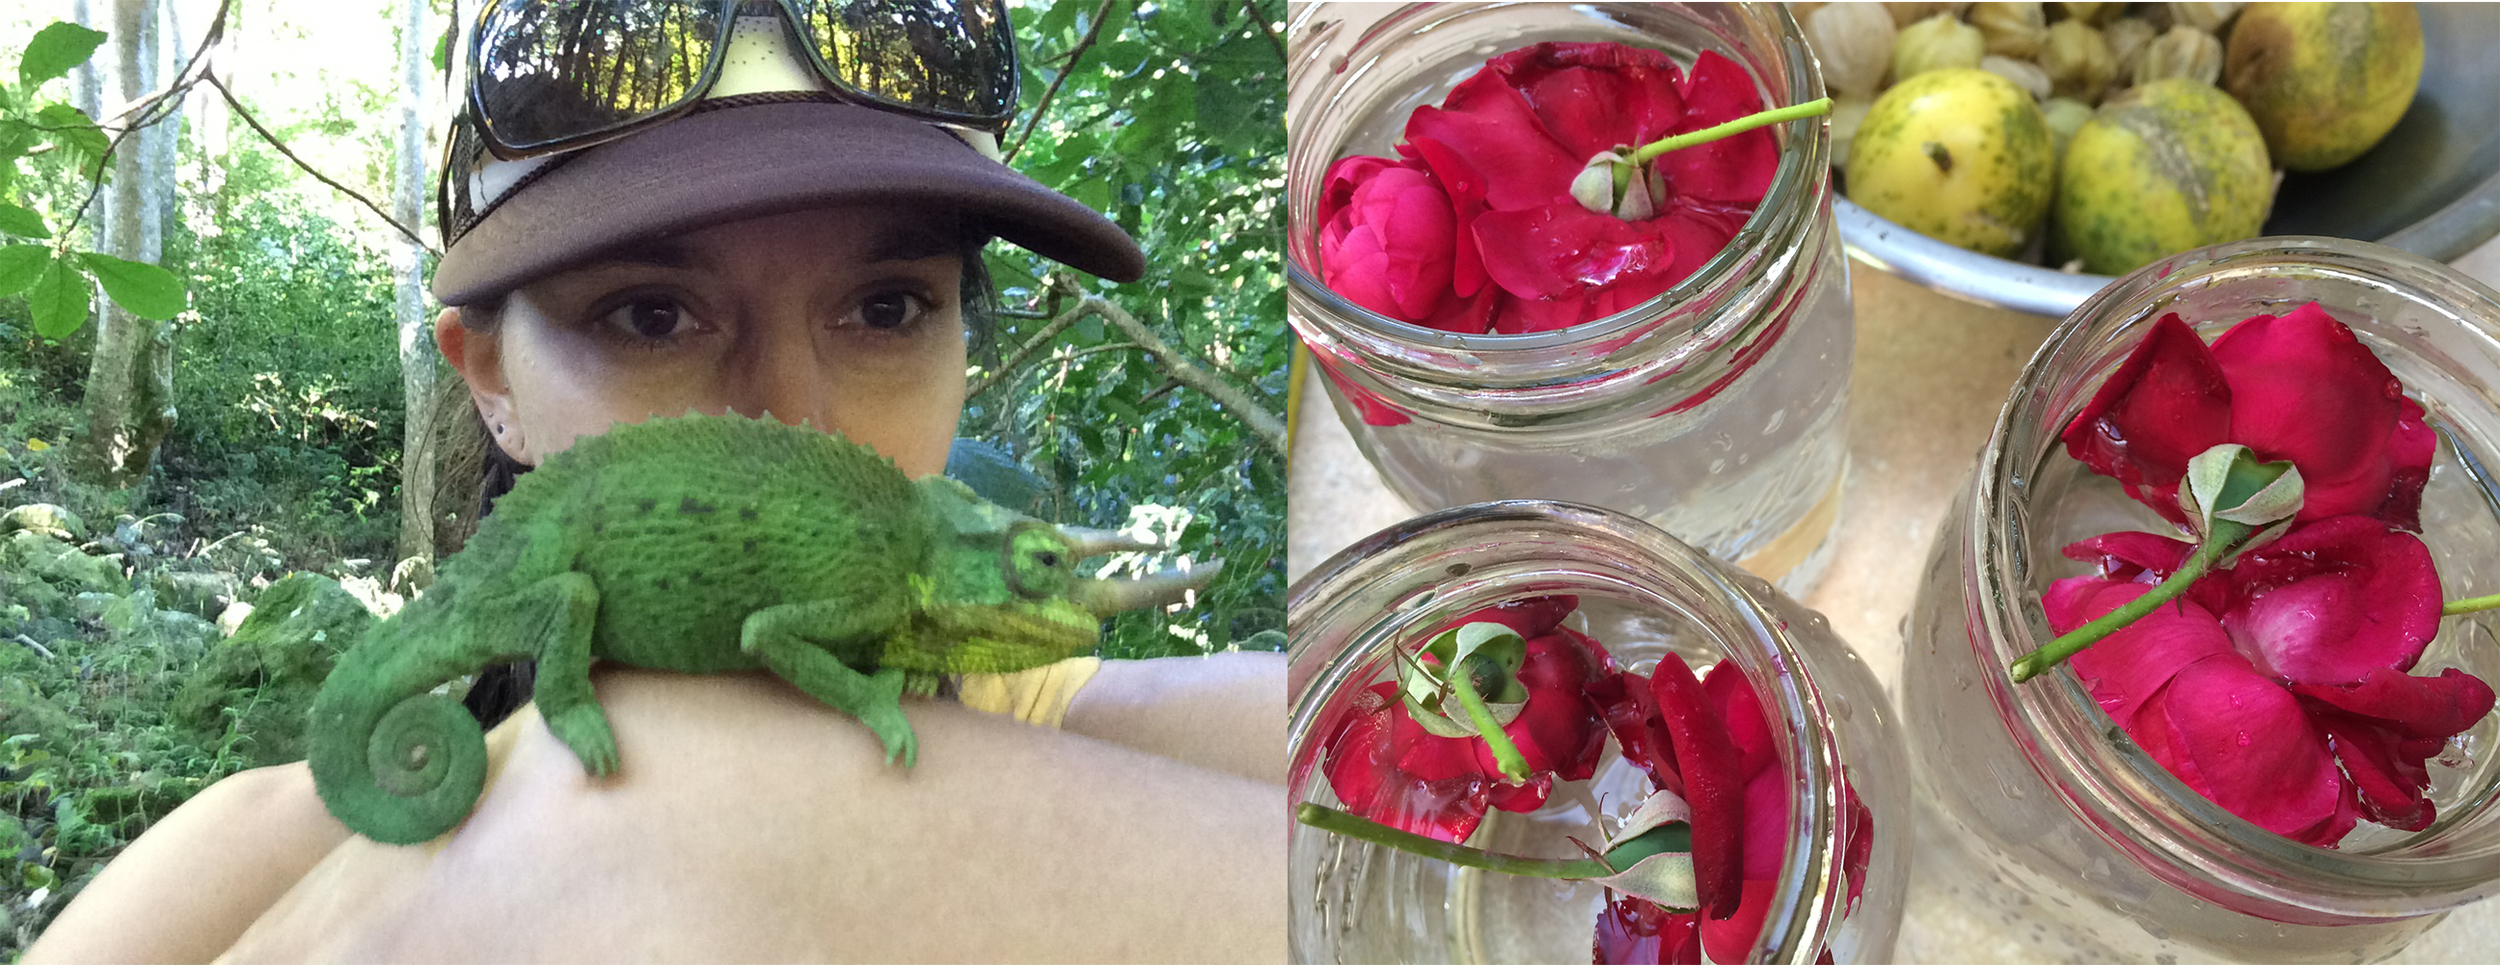 jackson chameleon finds, making rose water and bowlfuls of lilikoi